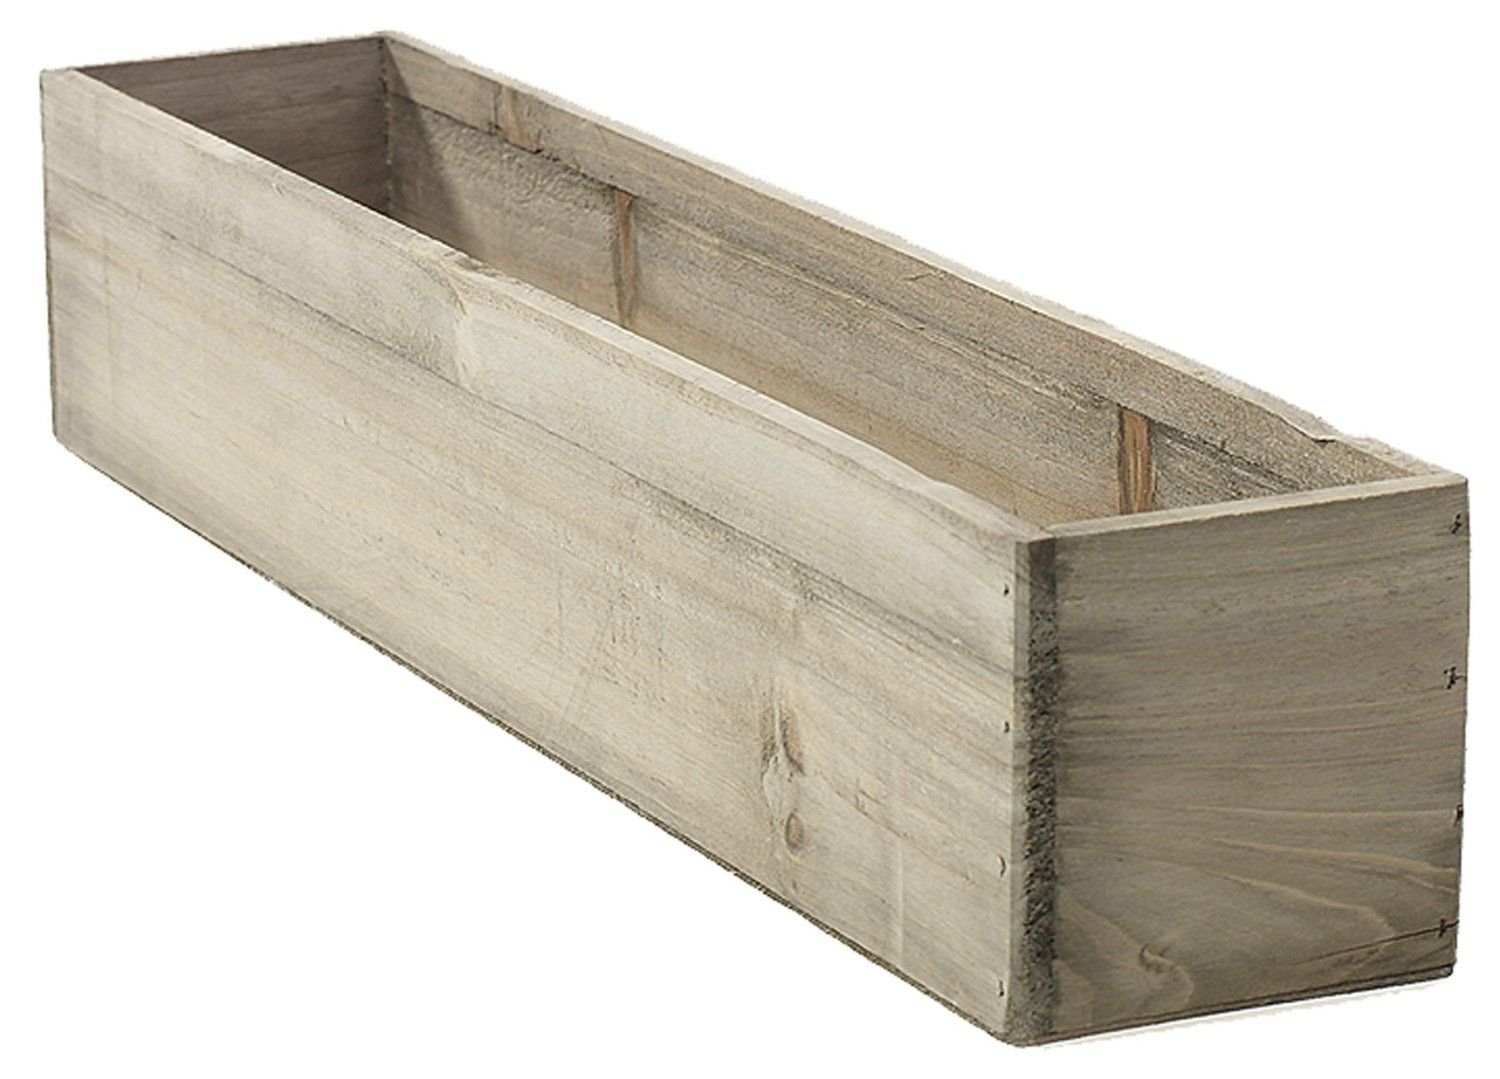 Amazonsmile 20 Rectangular Rustic Wood Planter With Plastic Liner Patio With Images Wood Planters Wooden Planters Pallet Planter